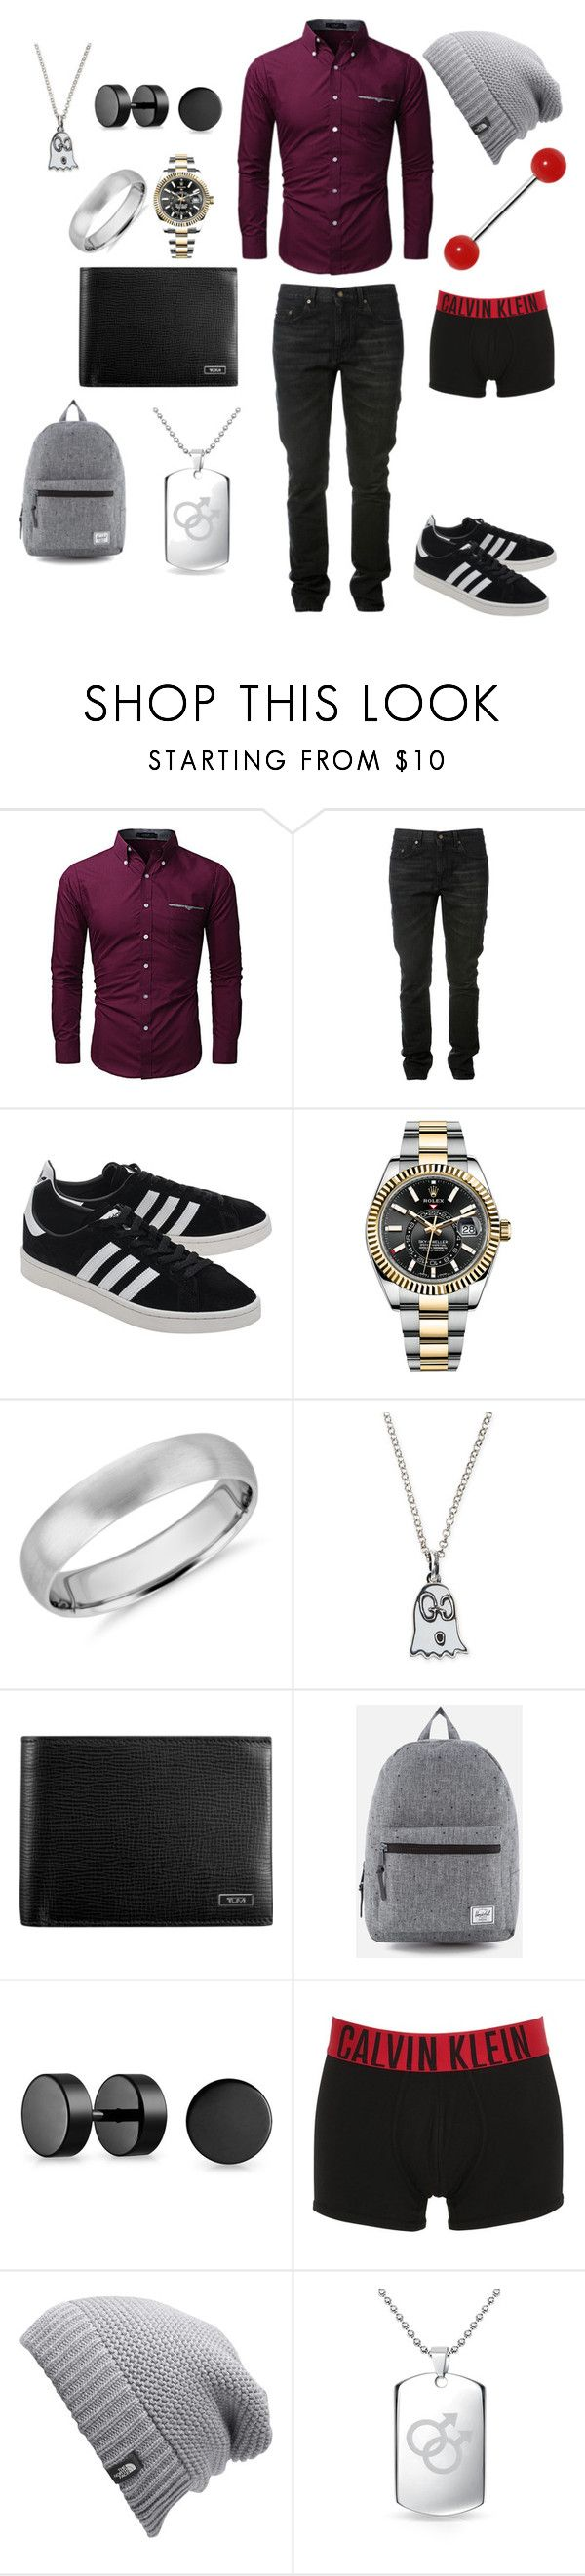 """Untitled #73"" by lexijackson331 on Polyvore featuring Yves Saint Laurent, adidas Originals, Rolex, Blue Nile, Gucci, Tumi, Herschel, Bling Jewelry, Calvin Klein Underwear and The North Face"